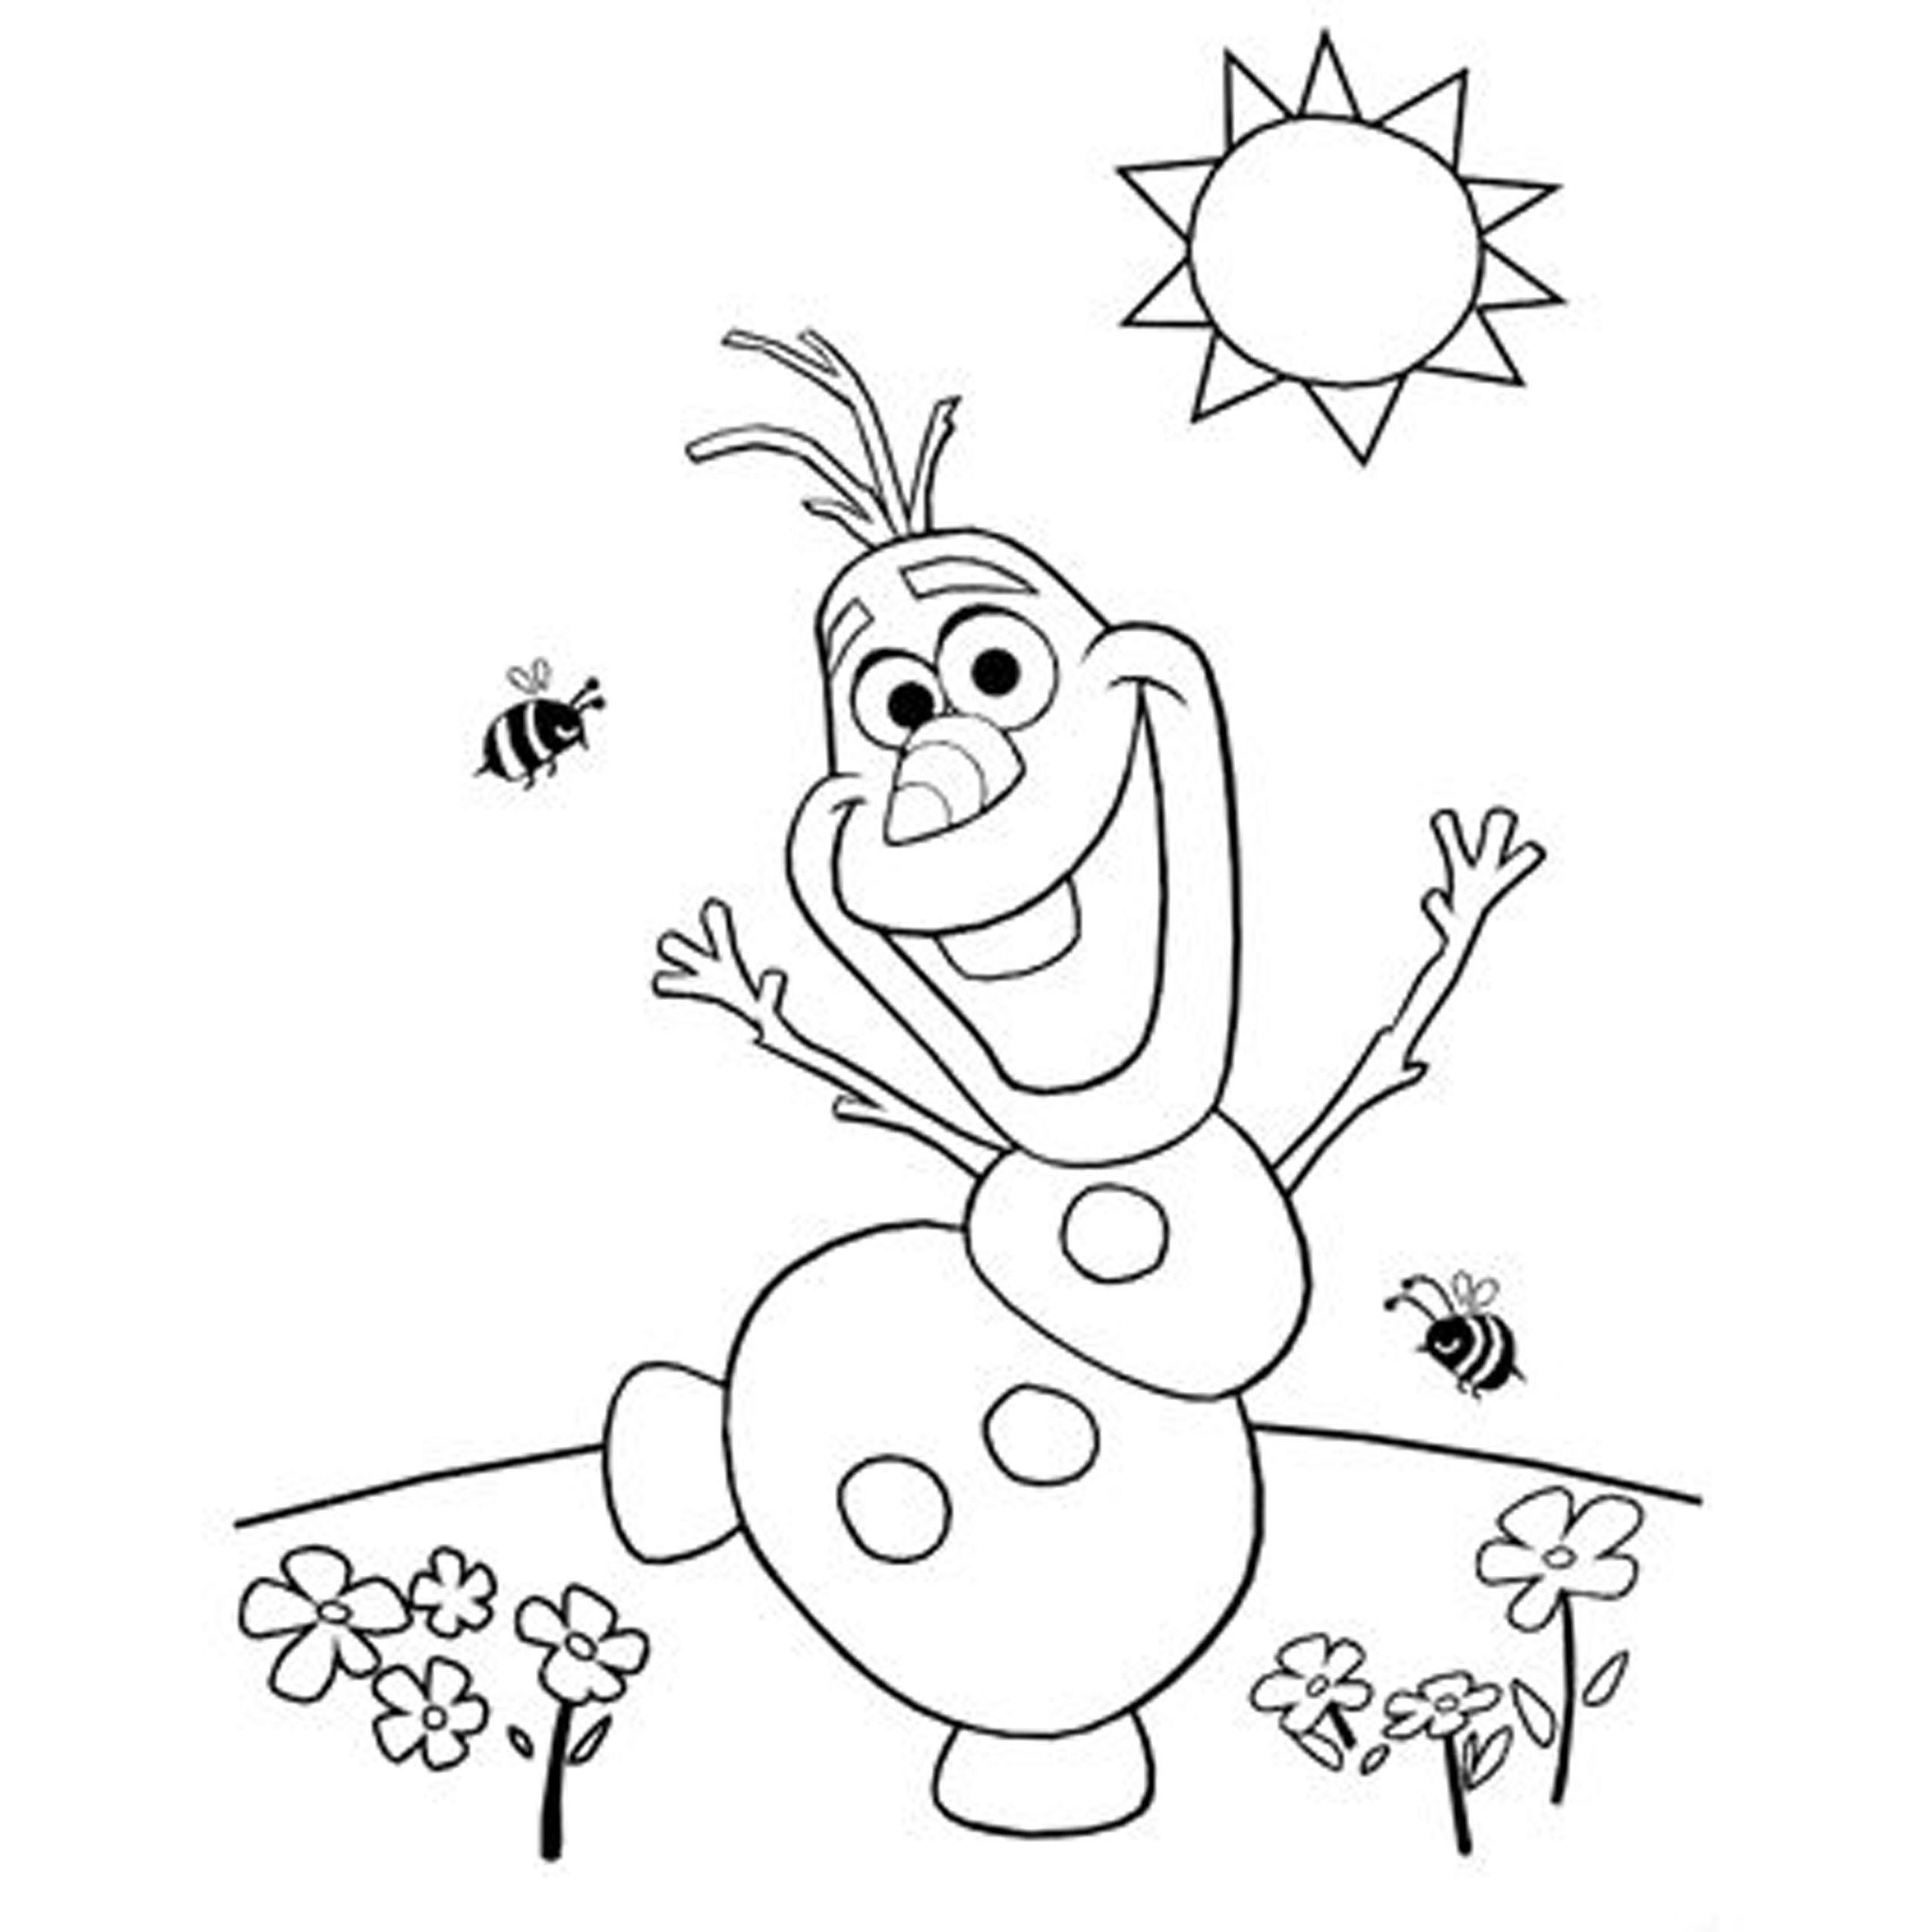 Free Olaf Coloring Pages Download Free Clip Art Free Clip Art On Clipart Library